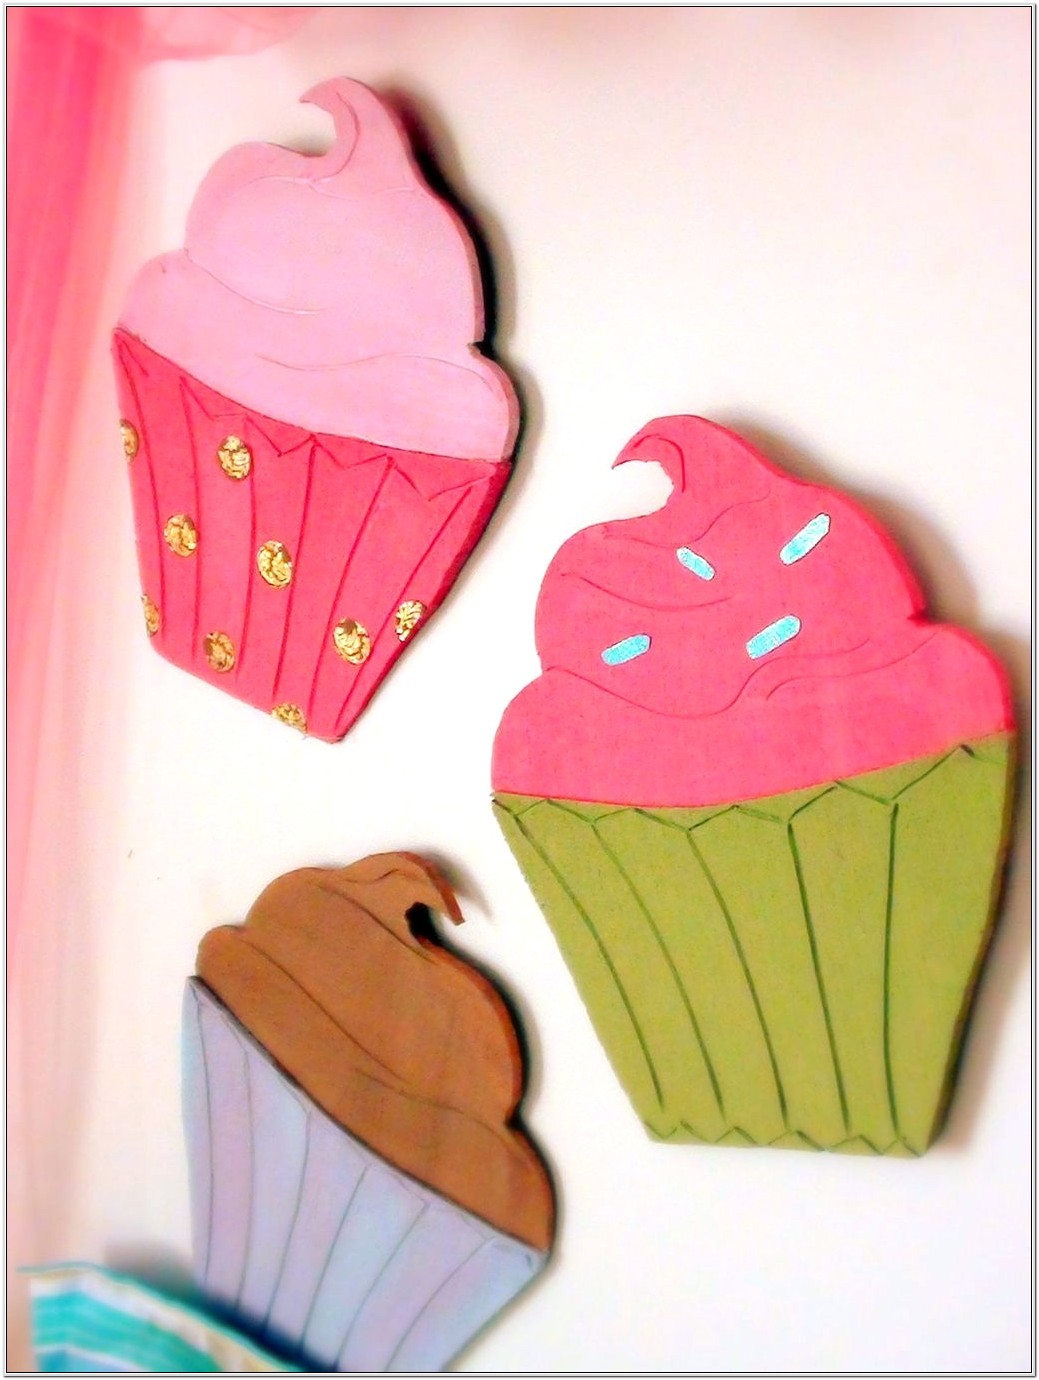 Cupcake Themed Bedroom Decor